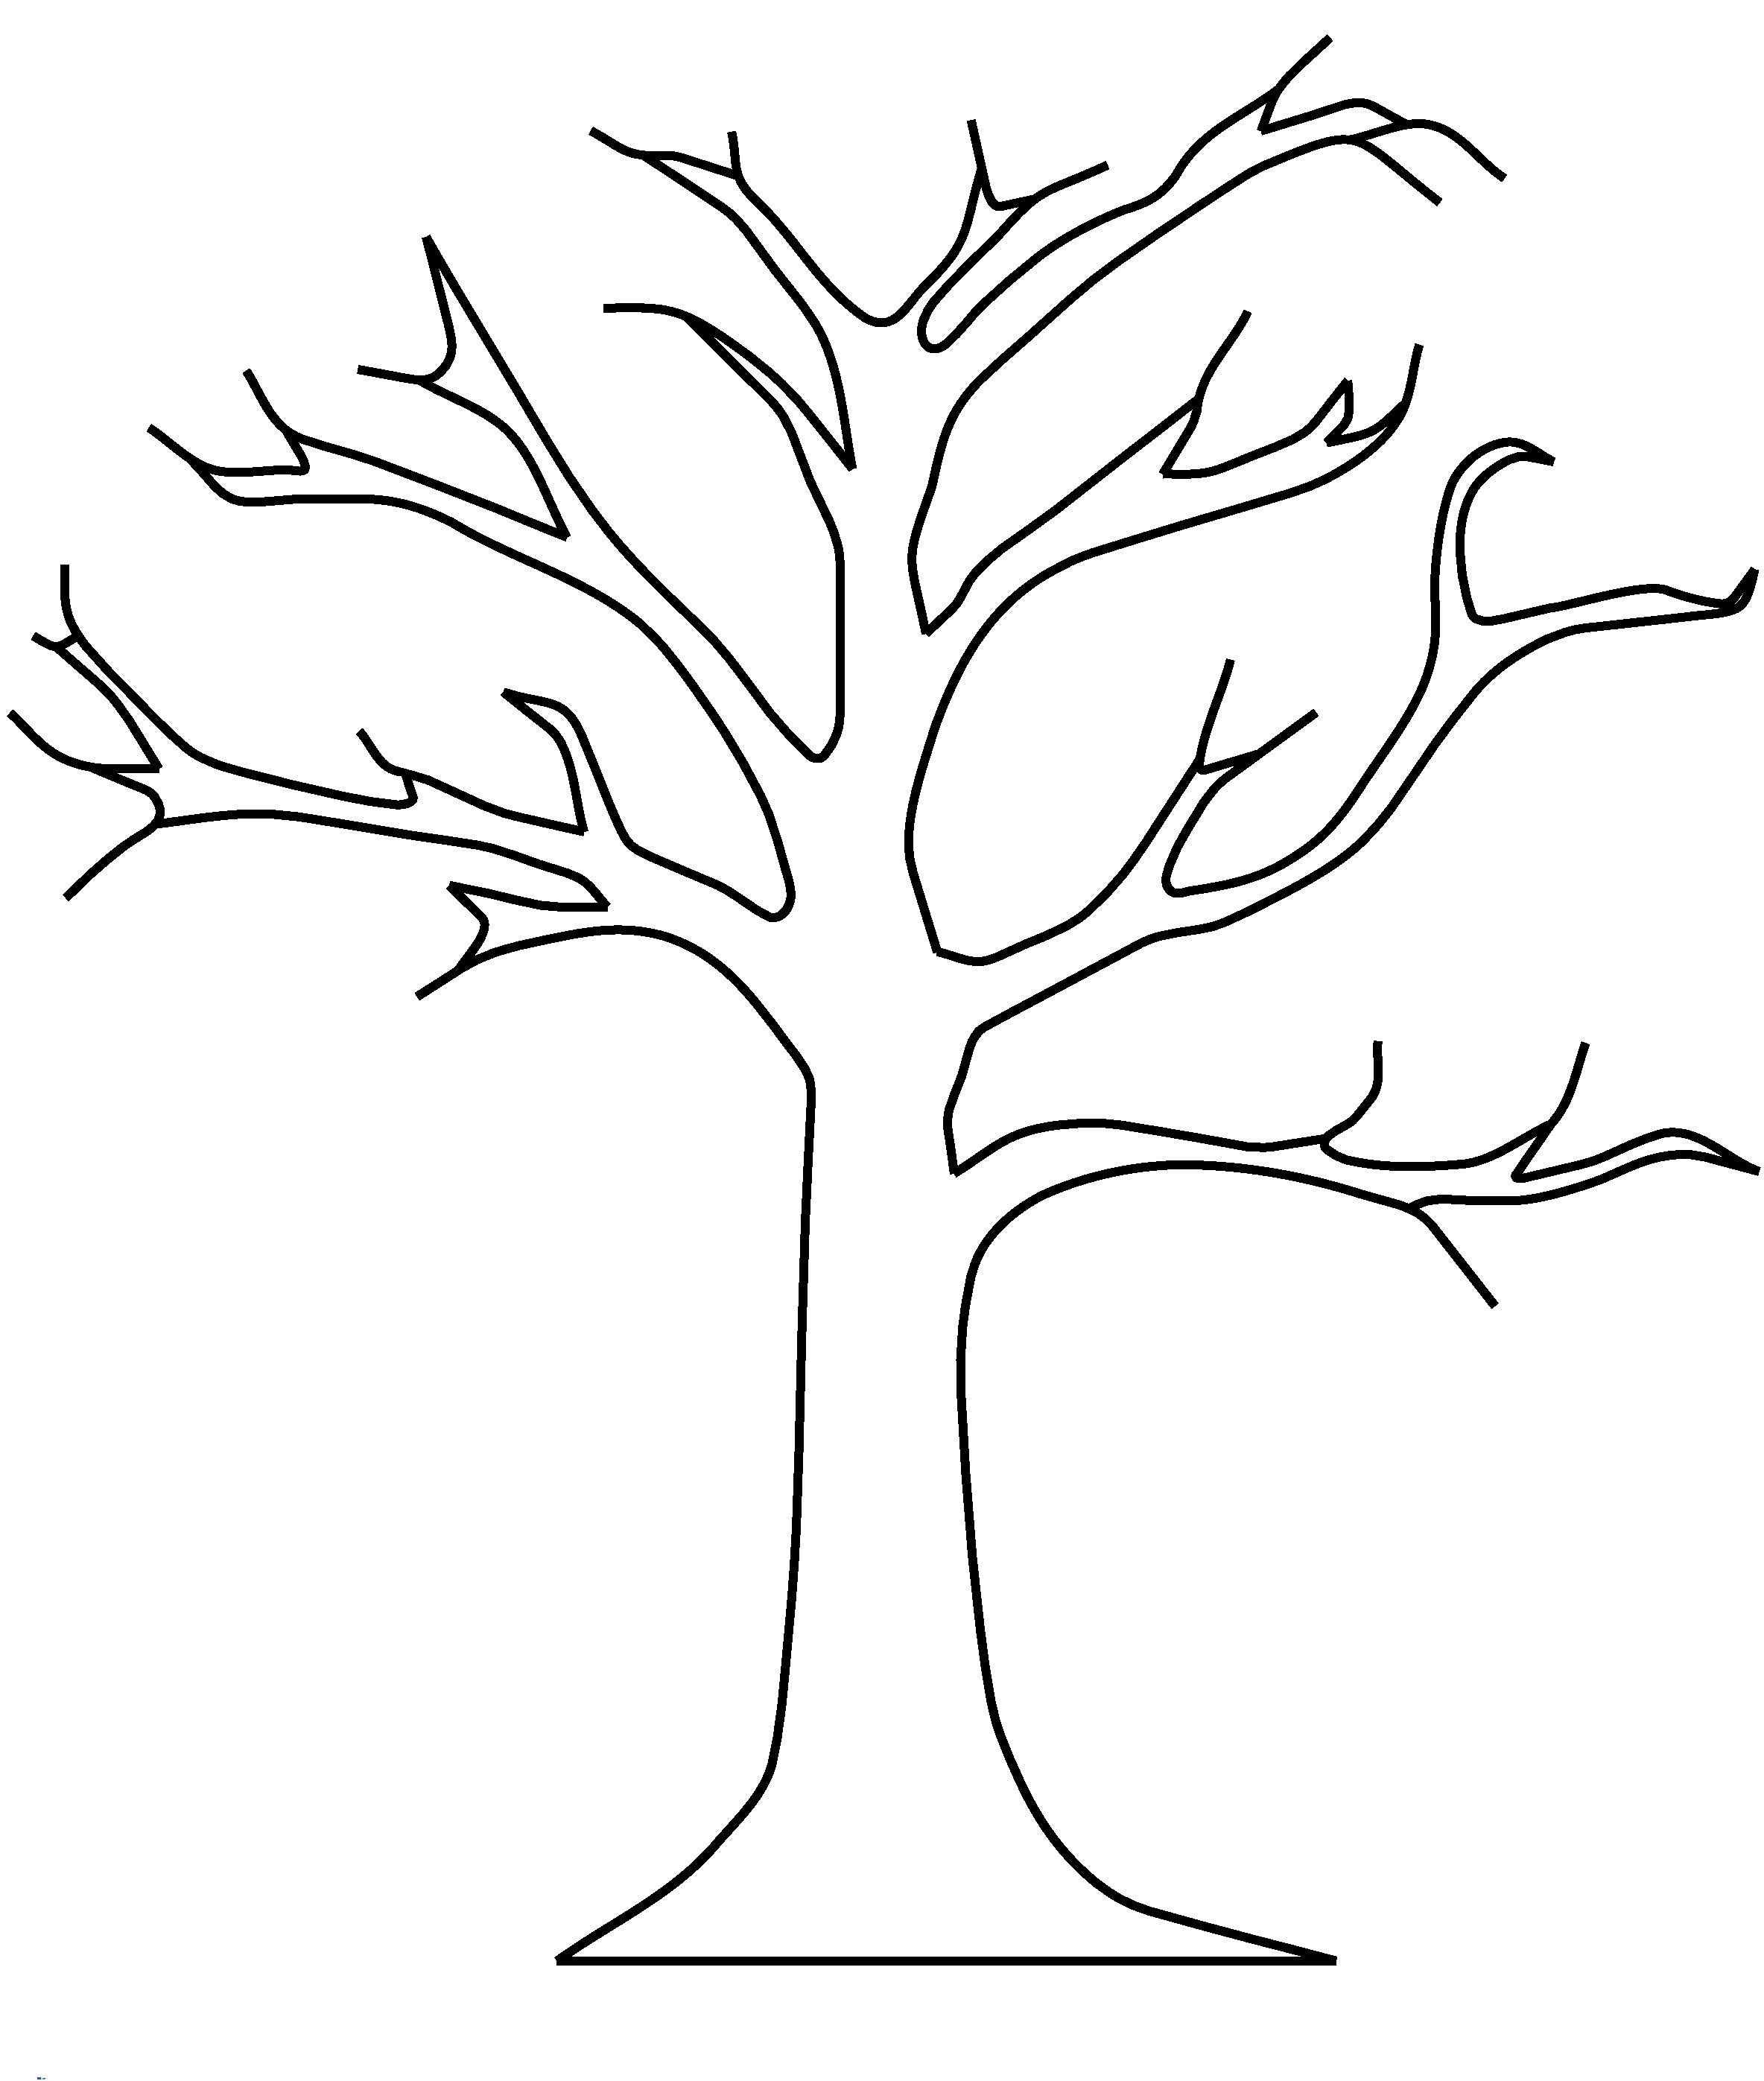 photograph relating to Tree Stencil Printable named Printable Tree Templates space